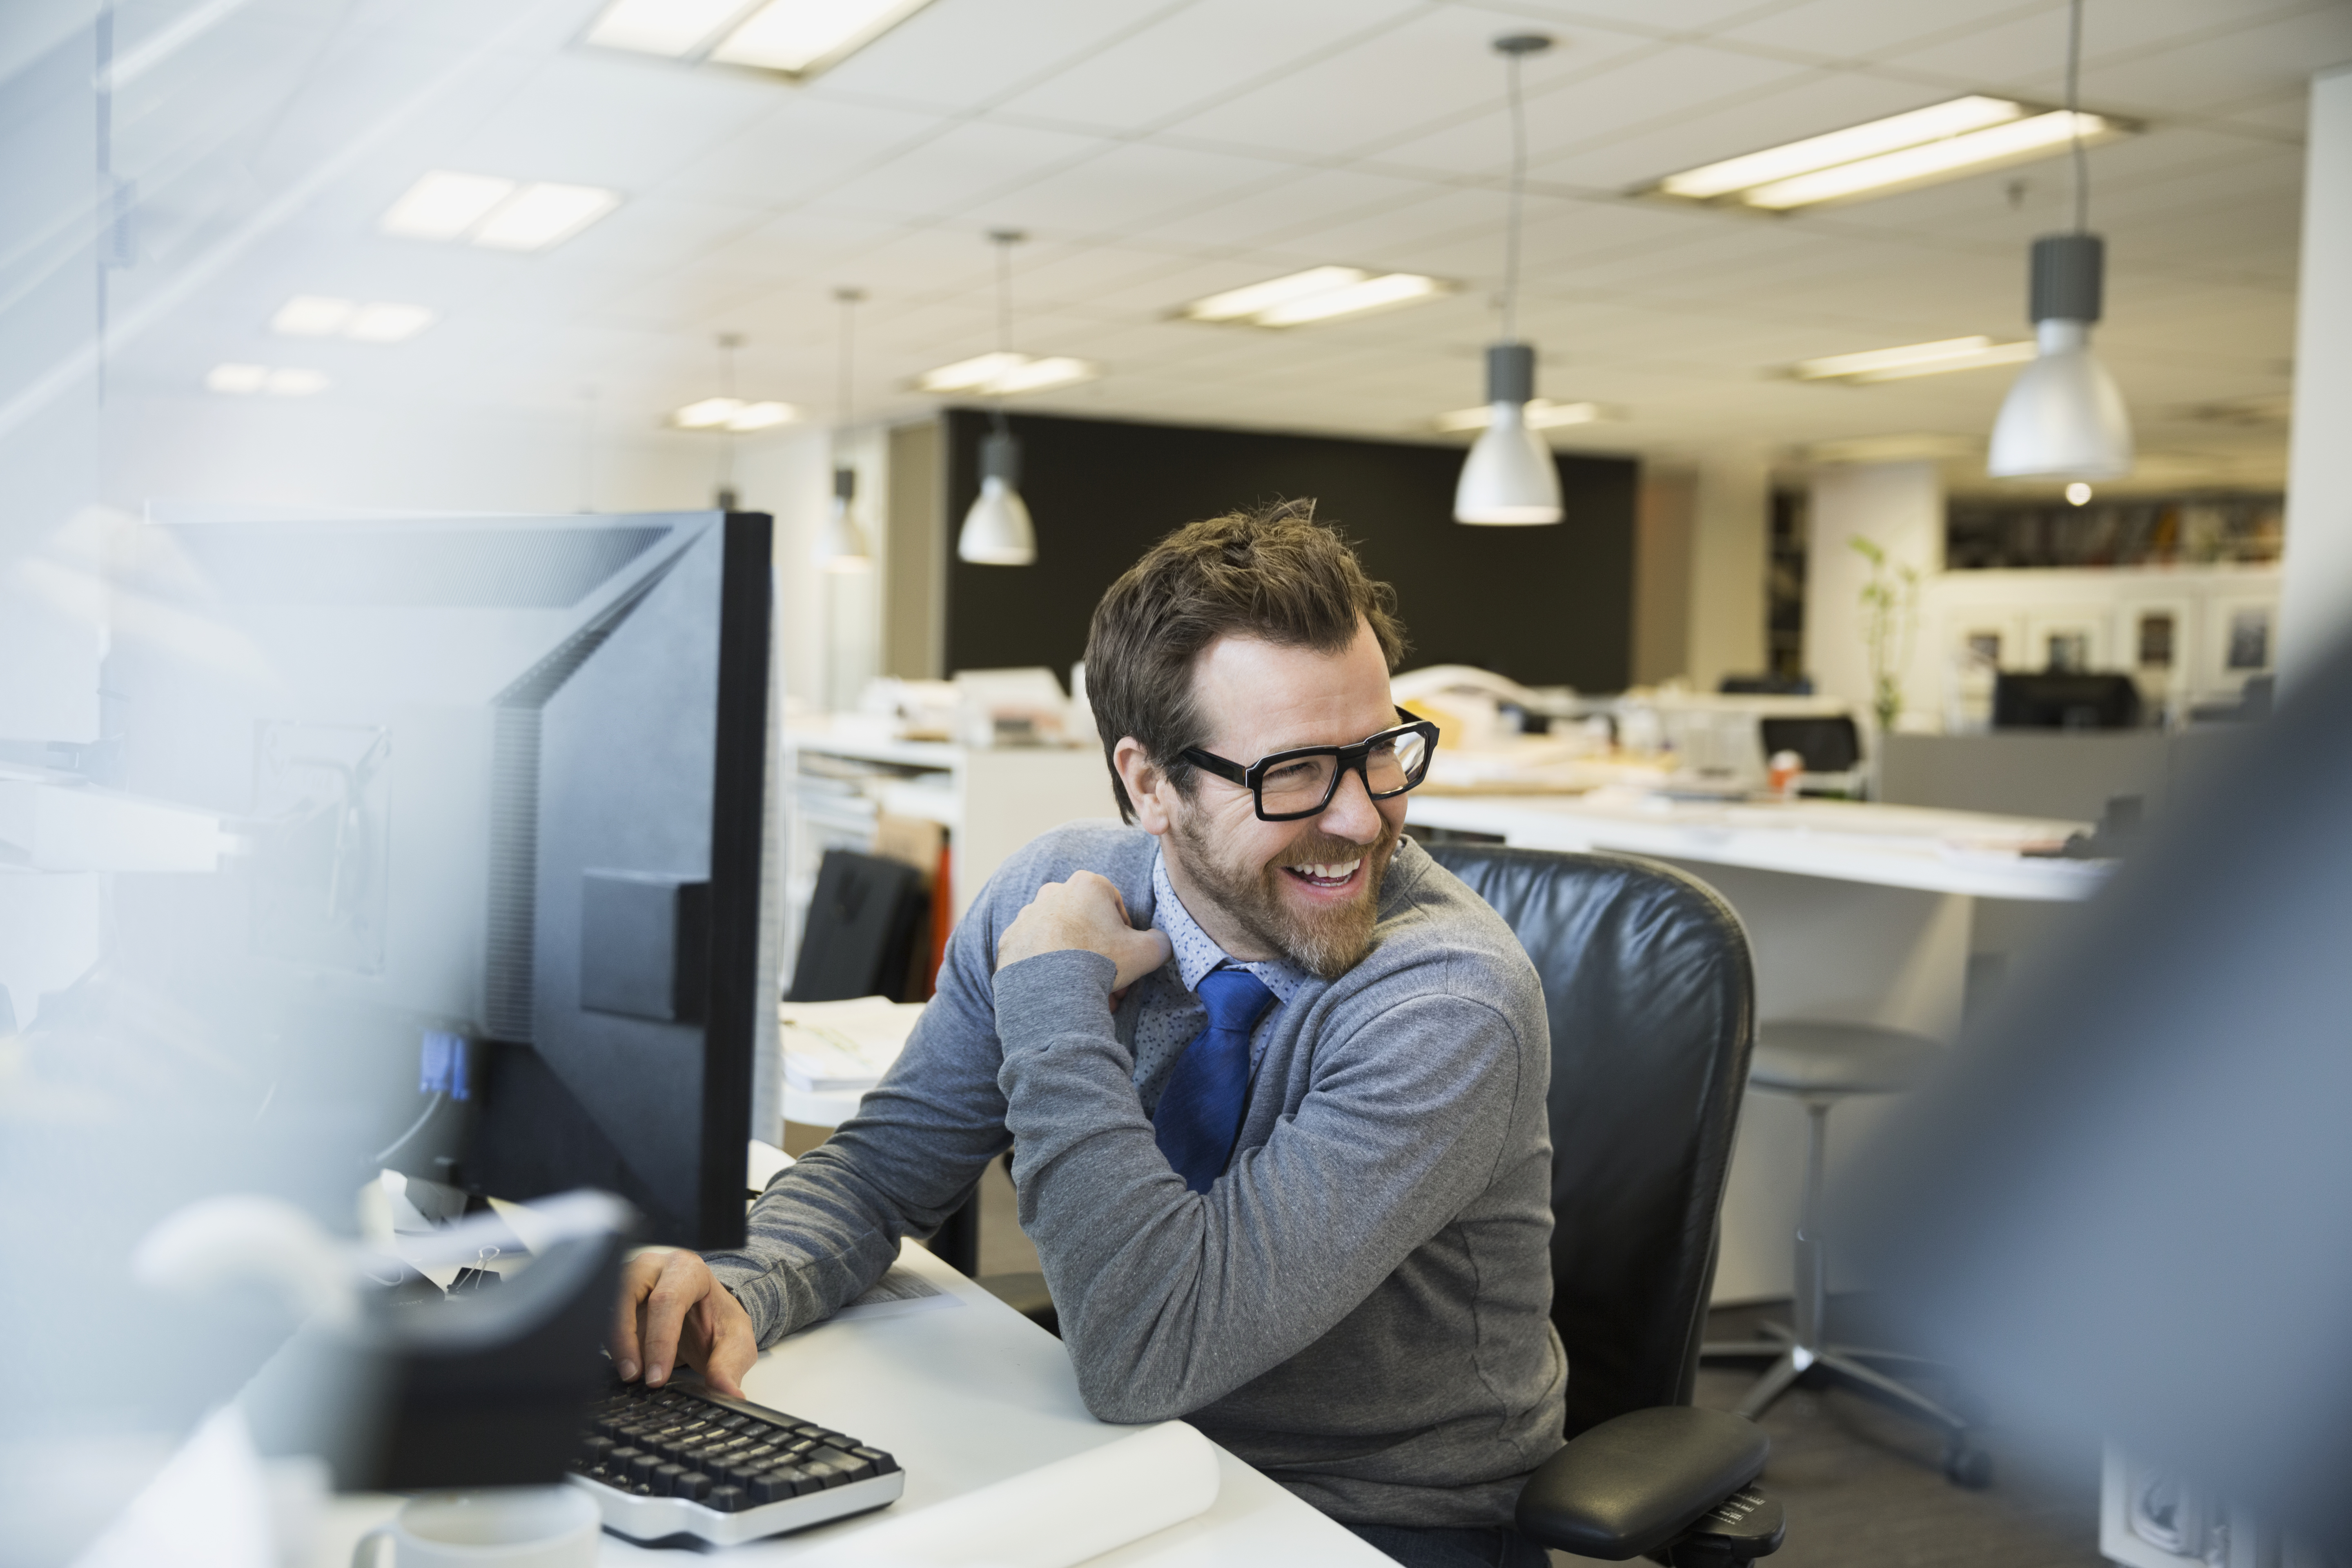 Smiling businessman working at computer looking over shoulder